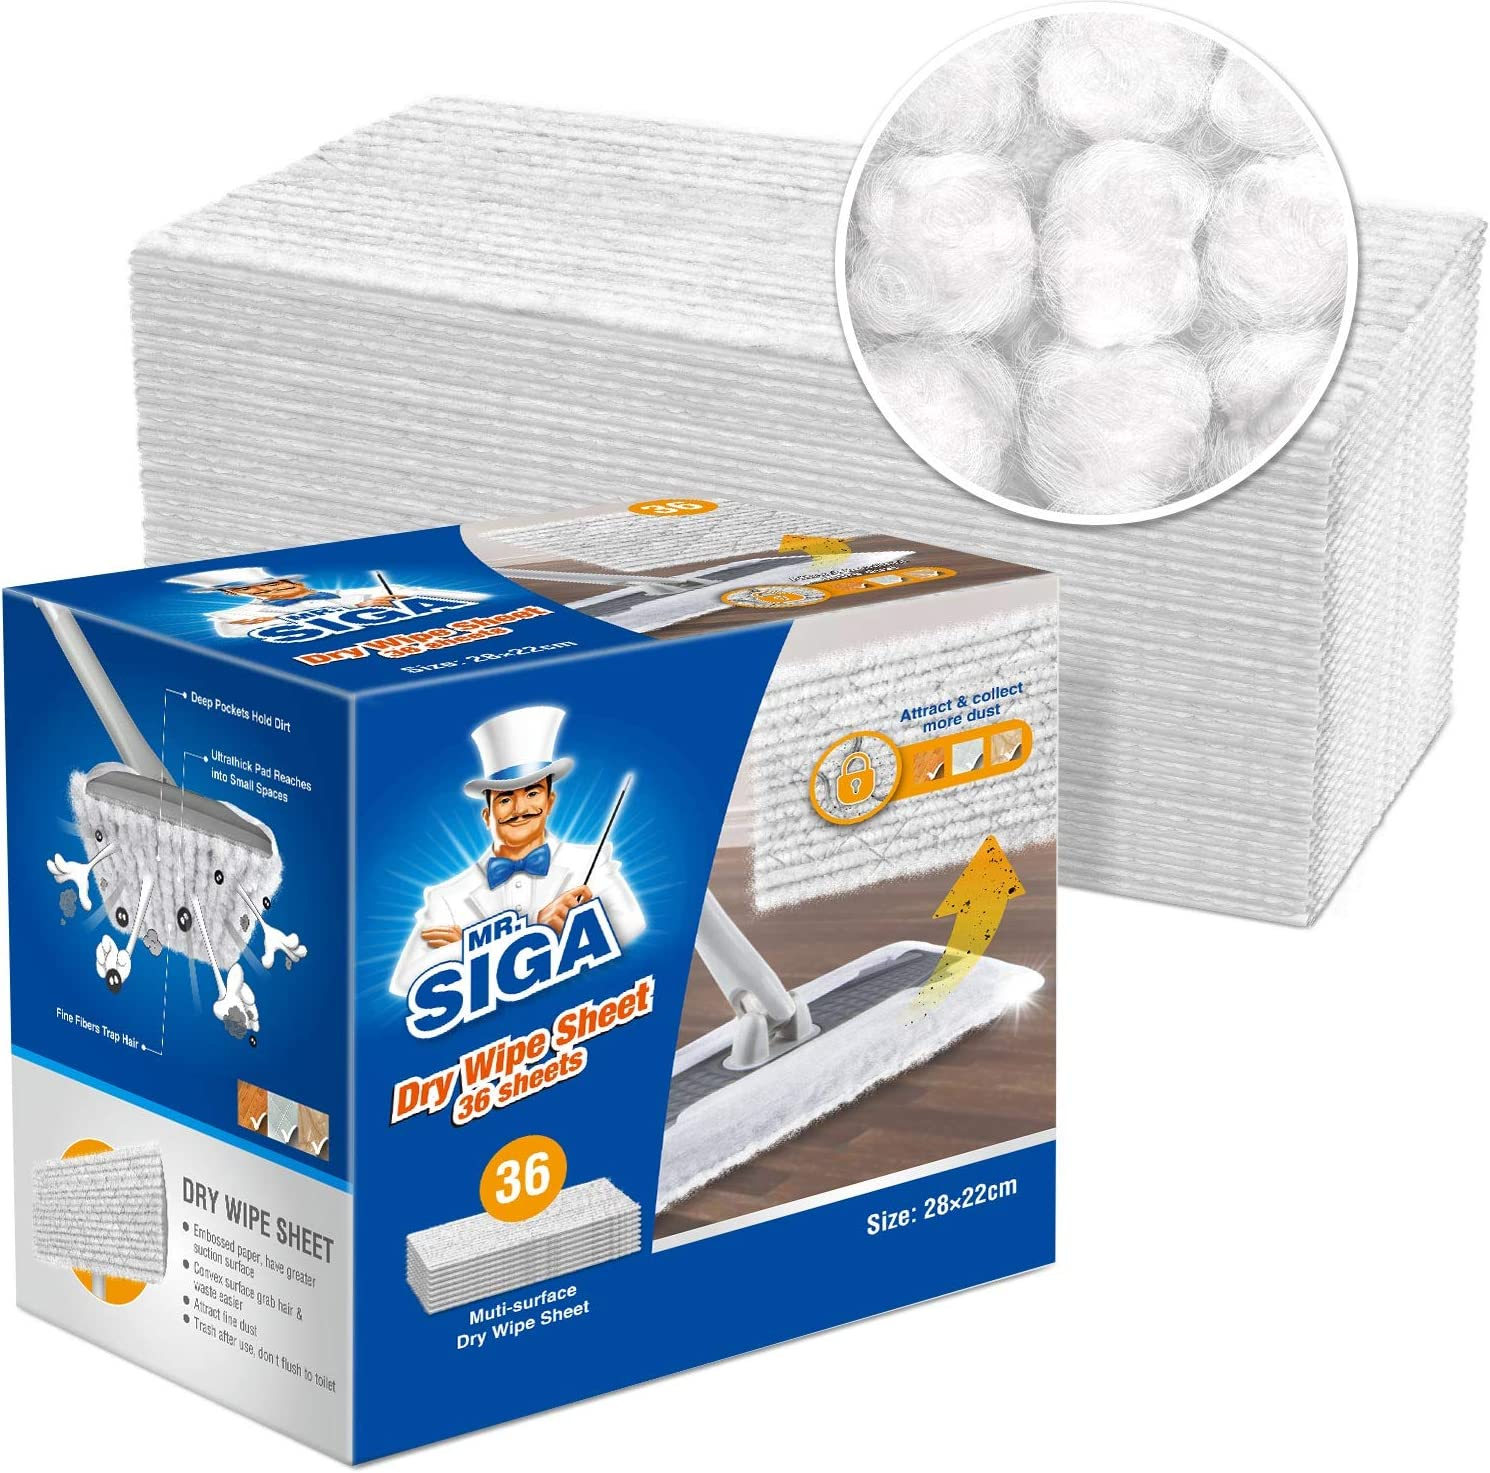 MR.SIGA Microfiber Dry Sweeping Refills, Disposable Dry Sweeping Cloths for Floor Cleaning, Unscented, 36 Count